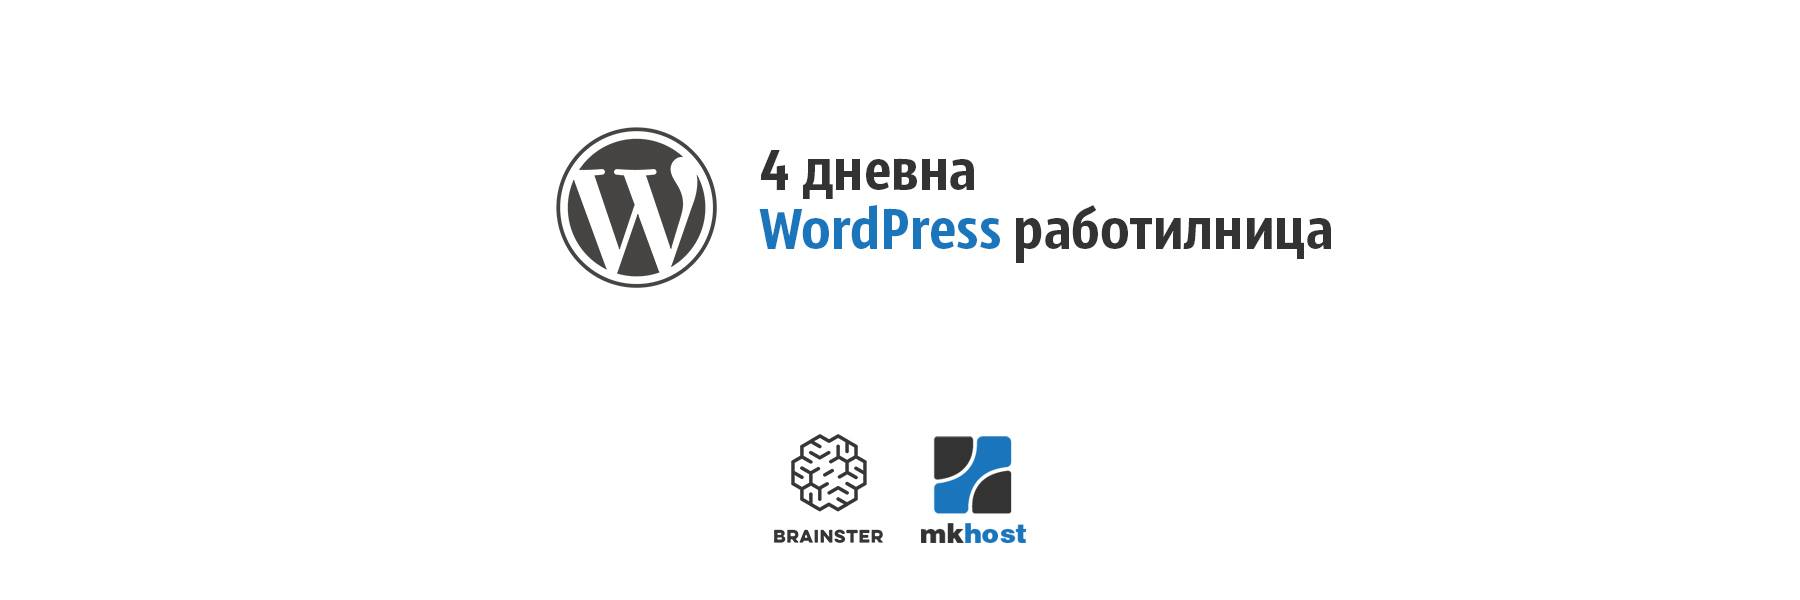 WordPress Работилница